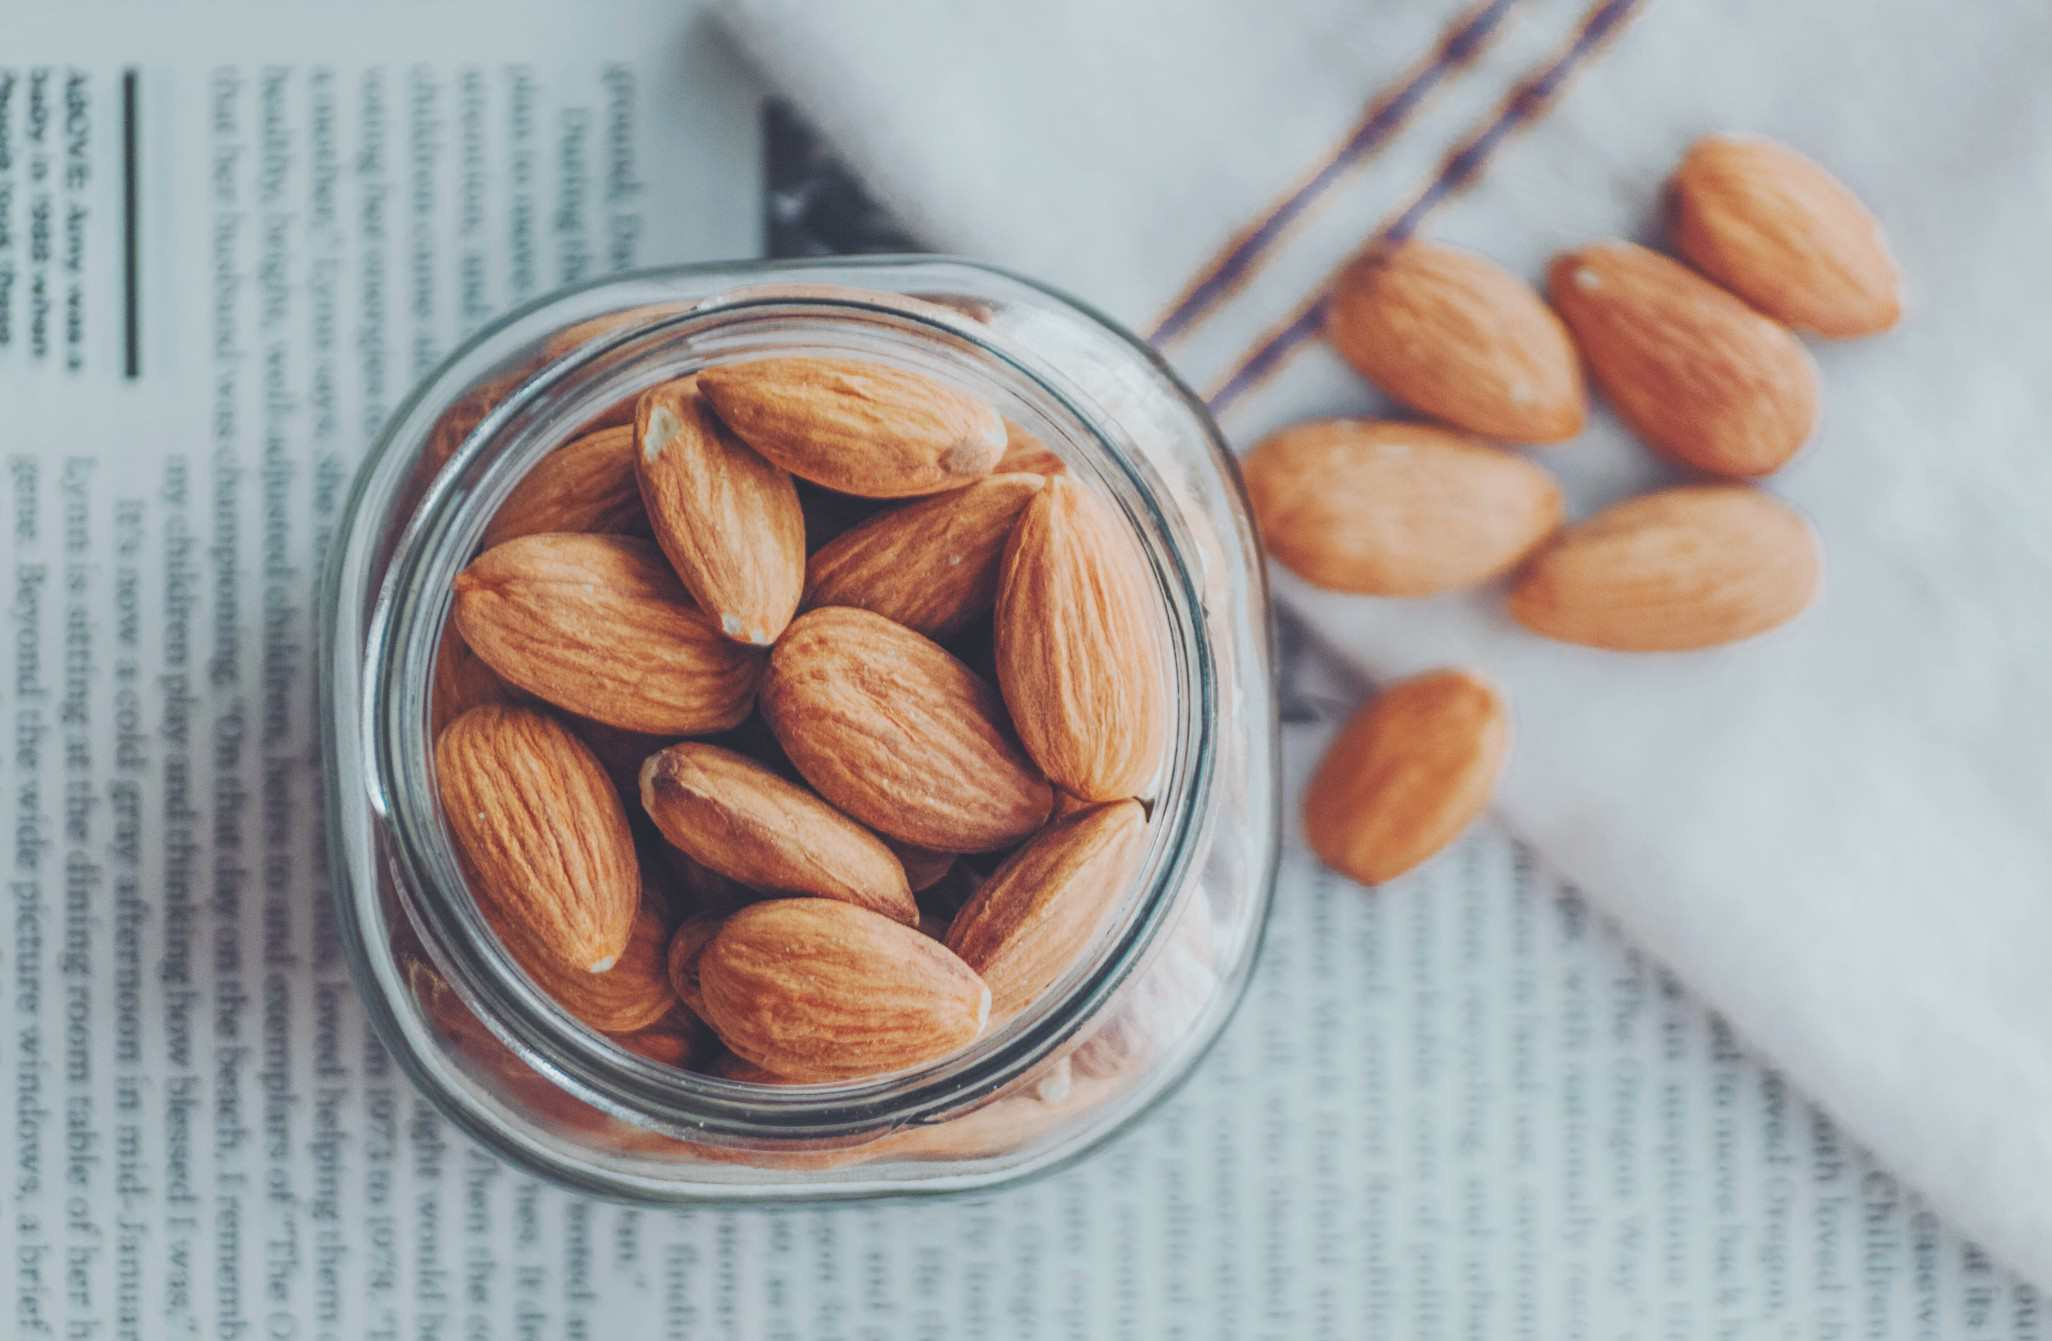 15 Anti-Inflammatory Foods You Should Be Eating